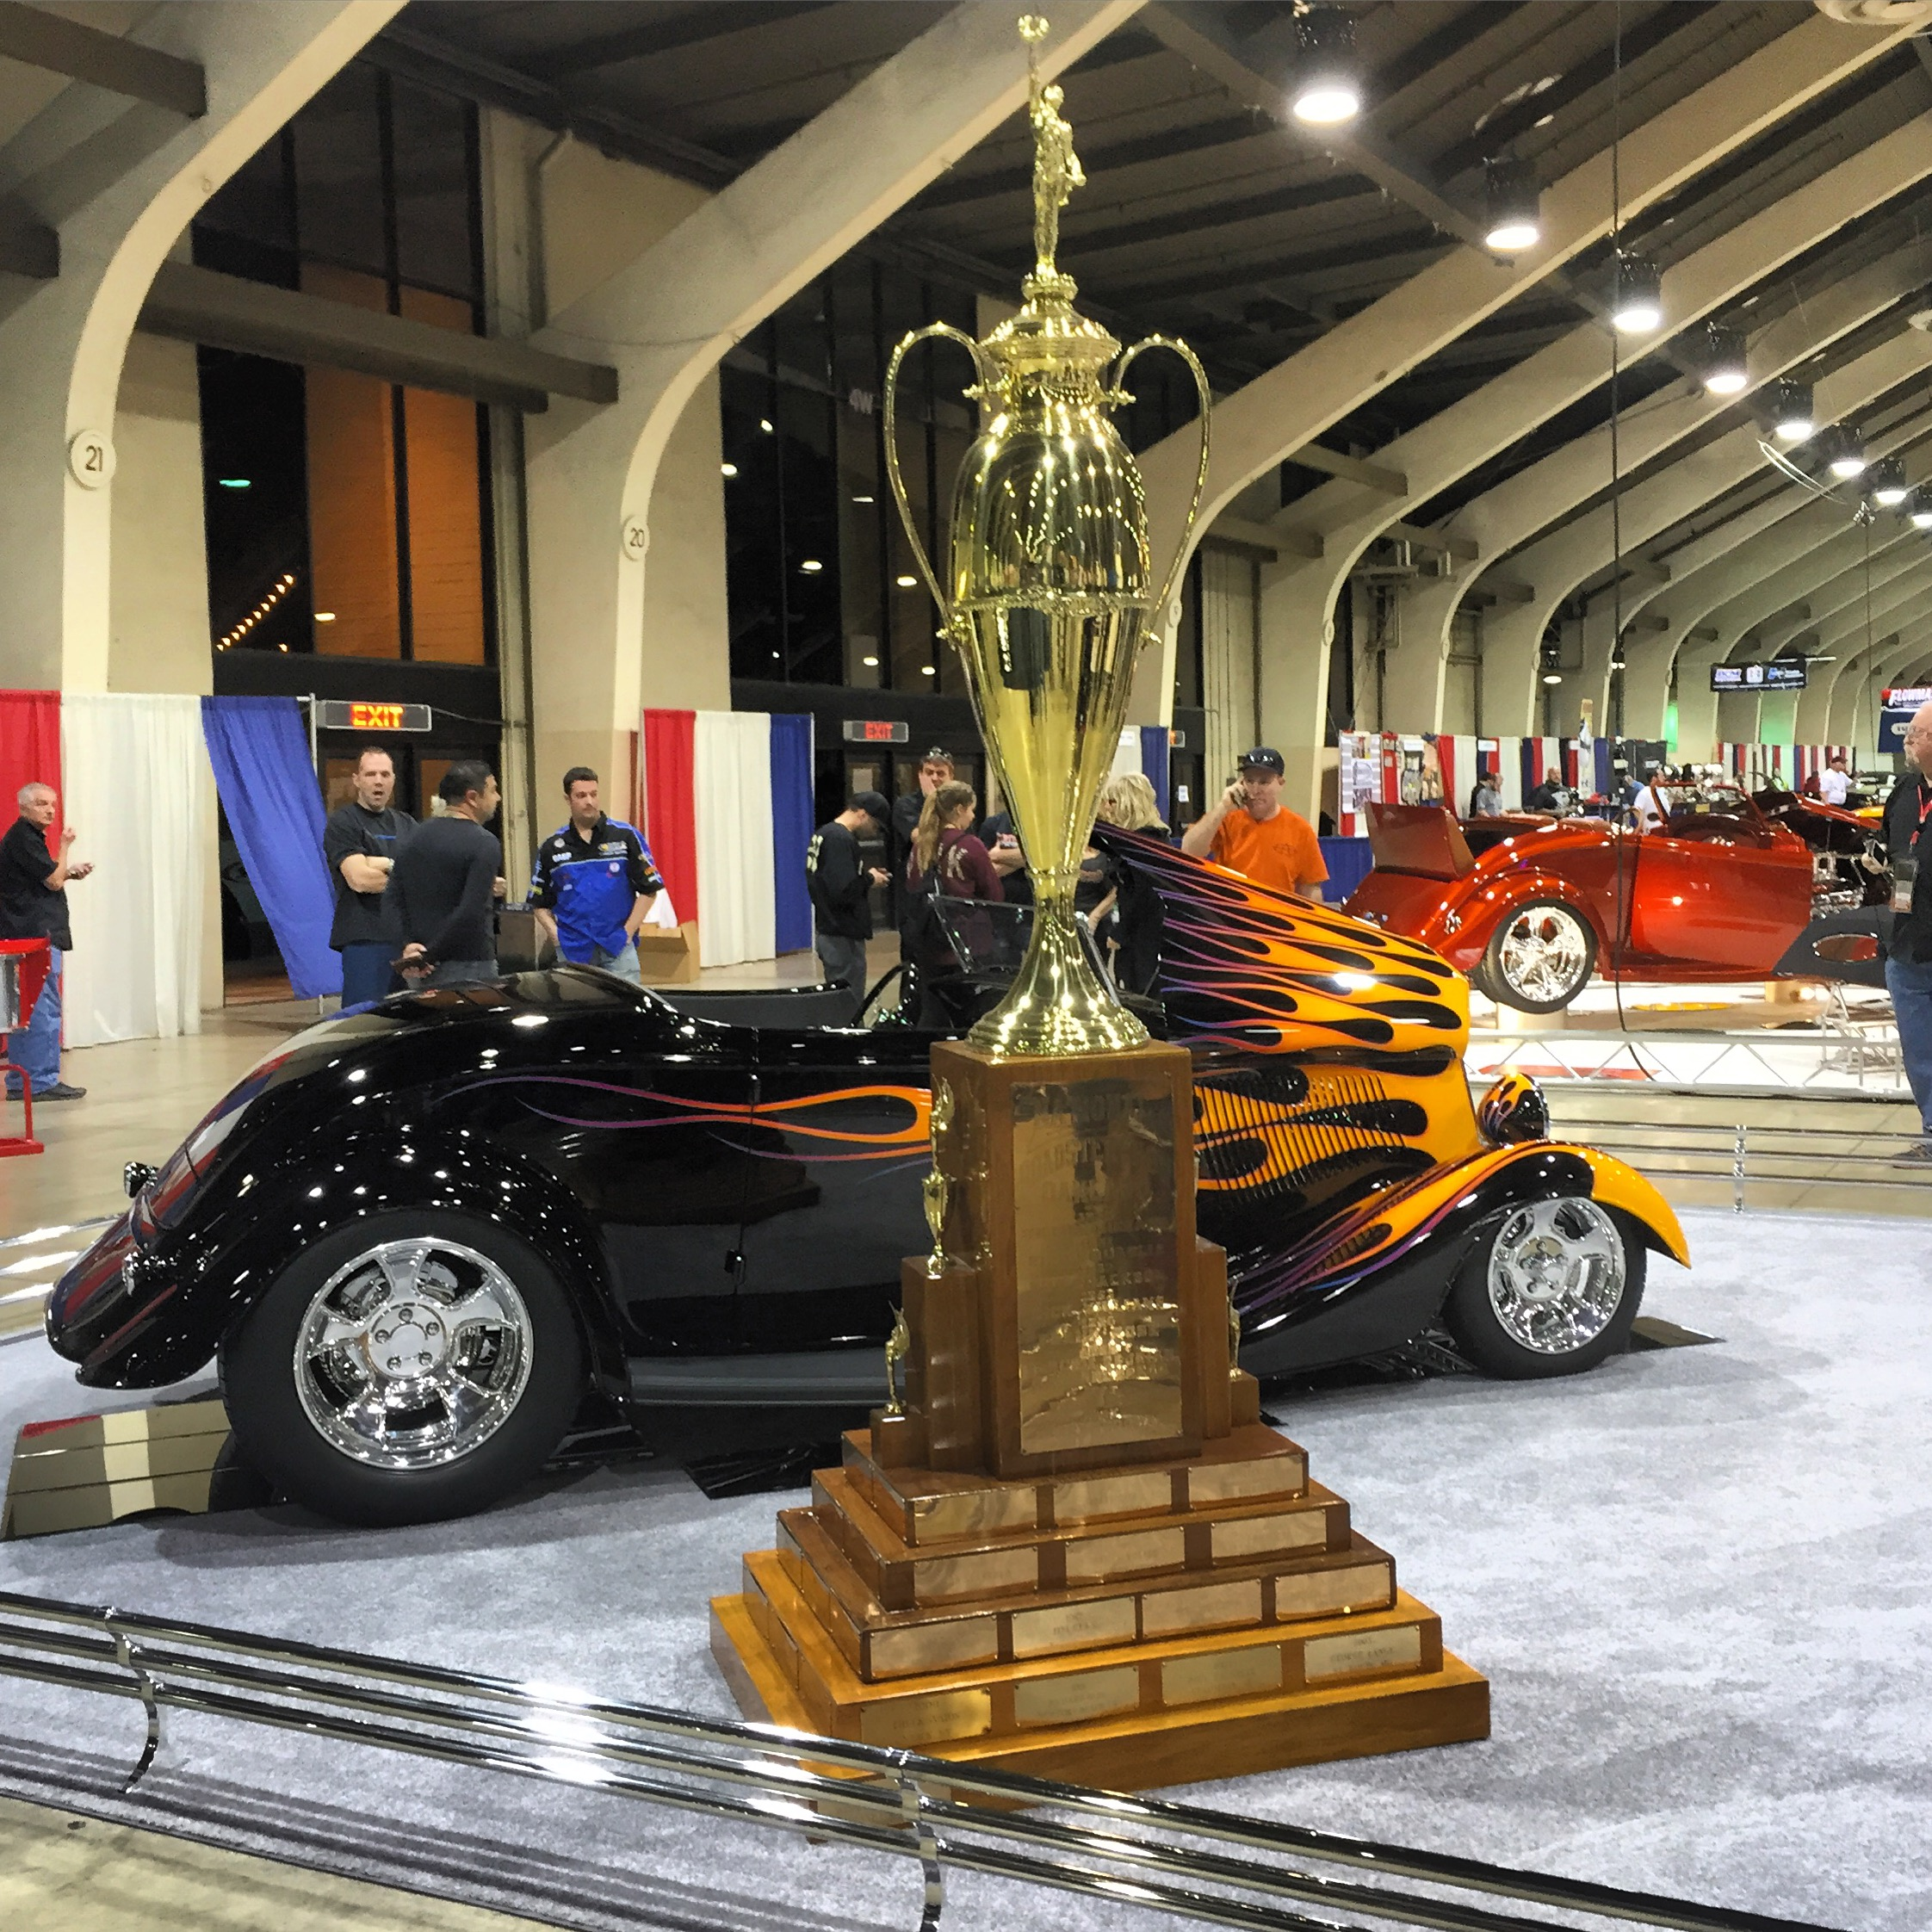 Alloways Hot Rod Shop News 1951 Chevrolet Custom We Have Won 2015 Americas Most Beautiful Roadster Along With Street Of The Year By Goodguys 37